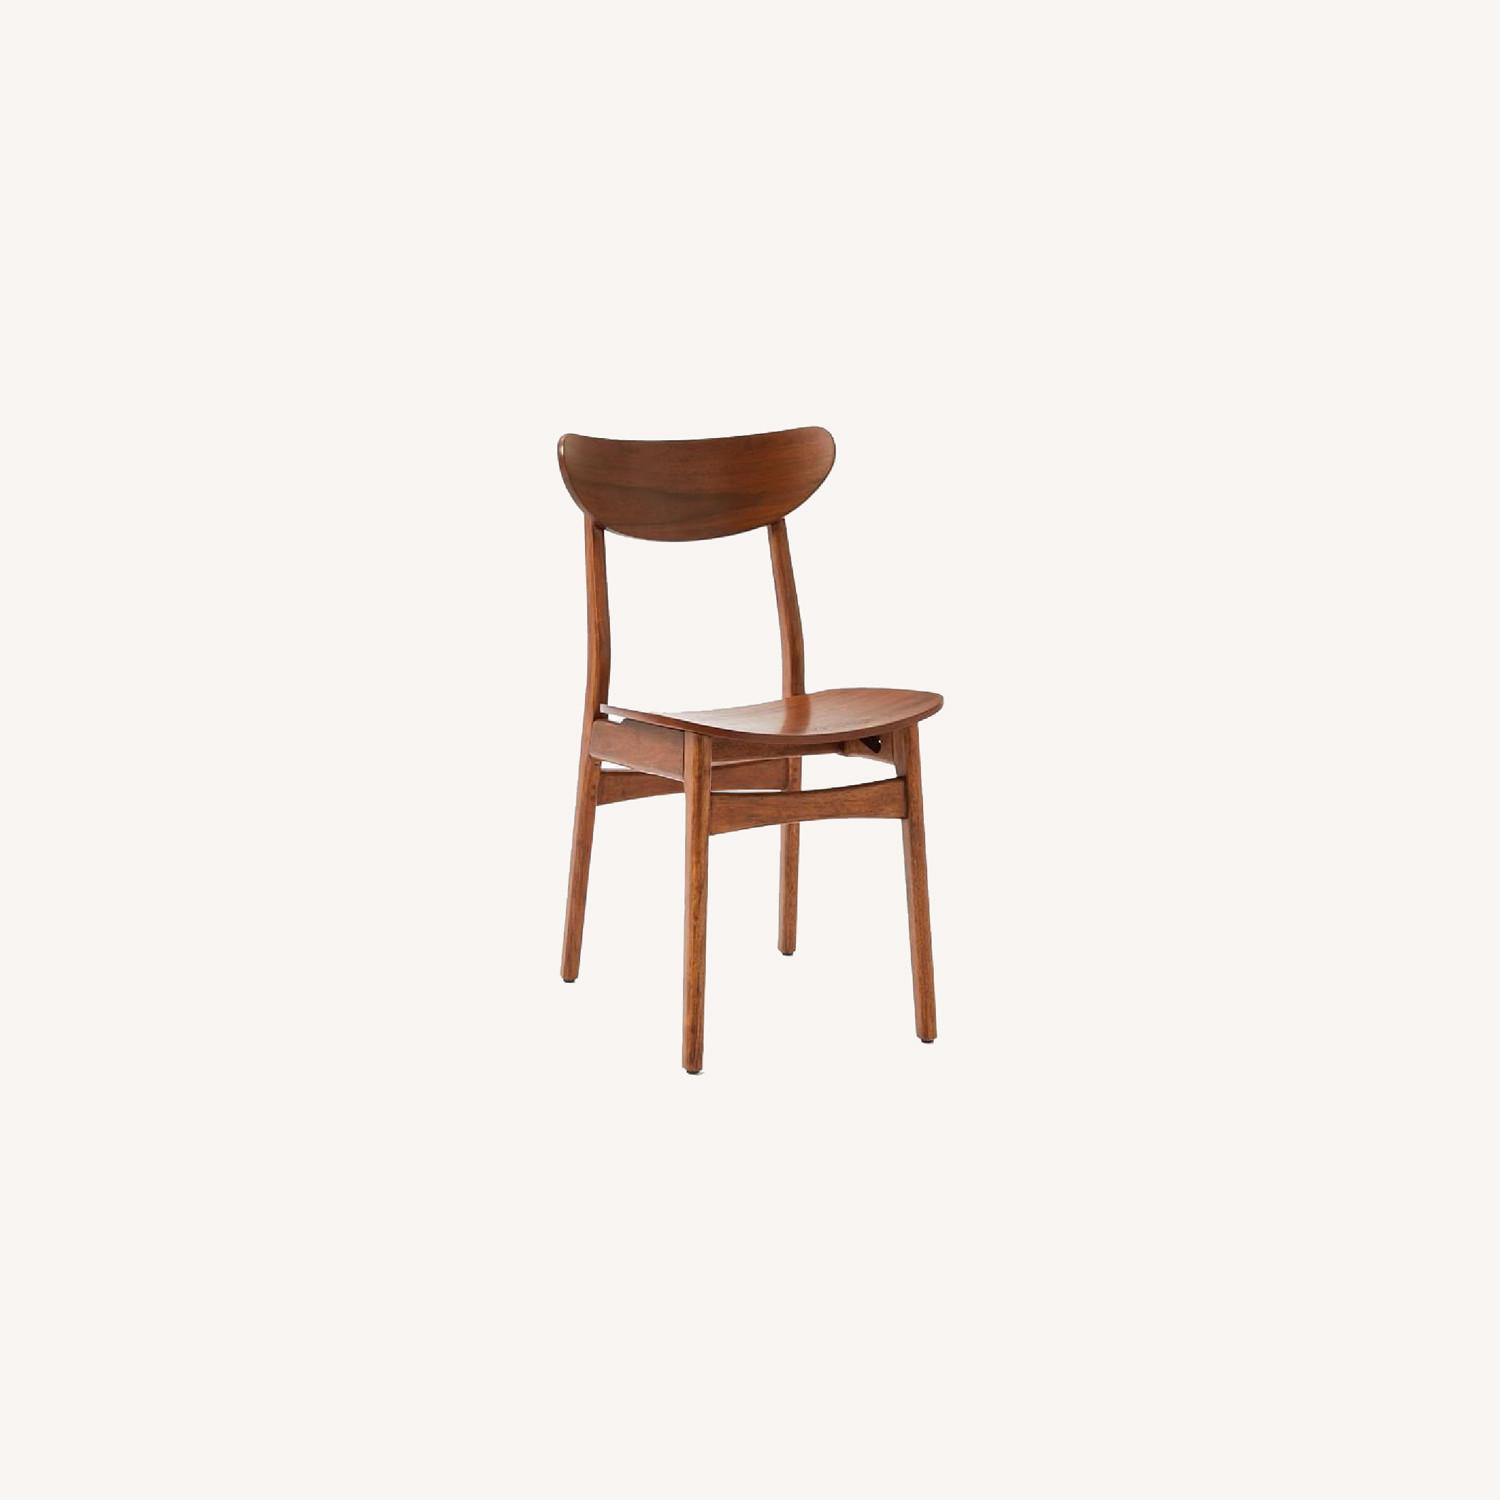 West Elm Walnut Dining Chairs - image-0